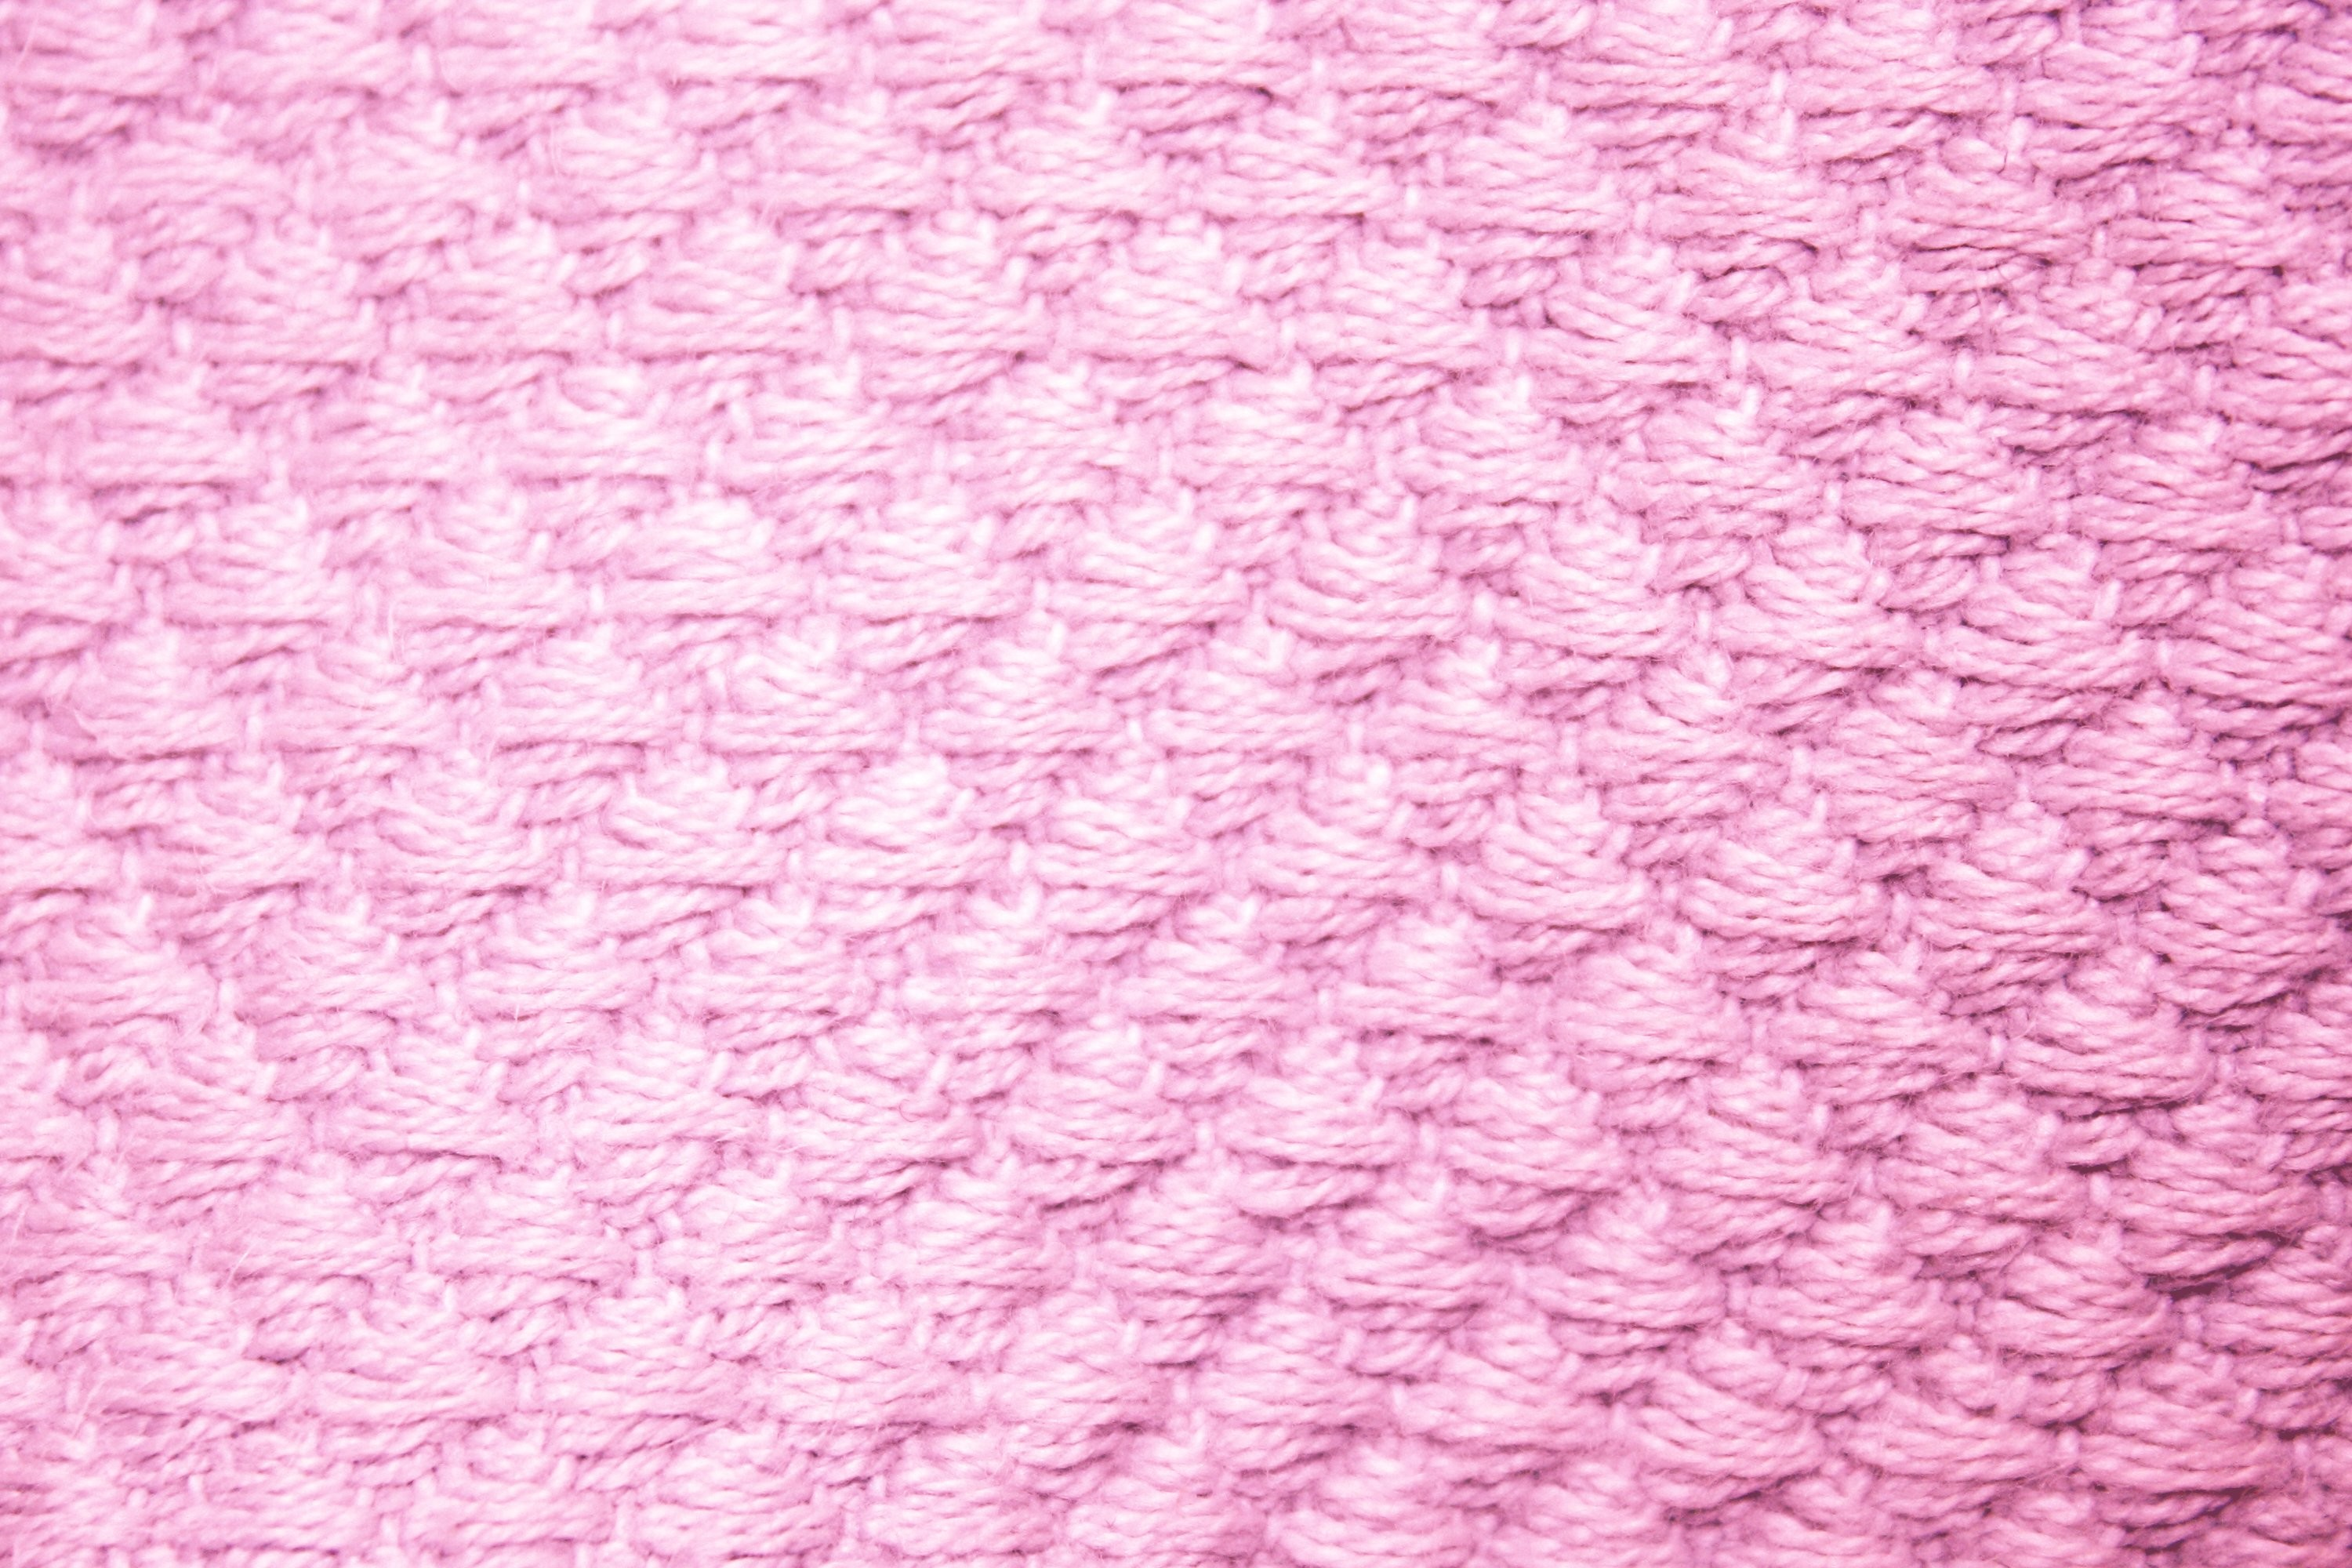 Res: 3000x2000, Pink Diamond Patterned Blanket Close Up Texture